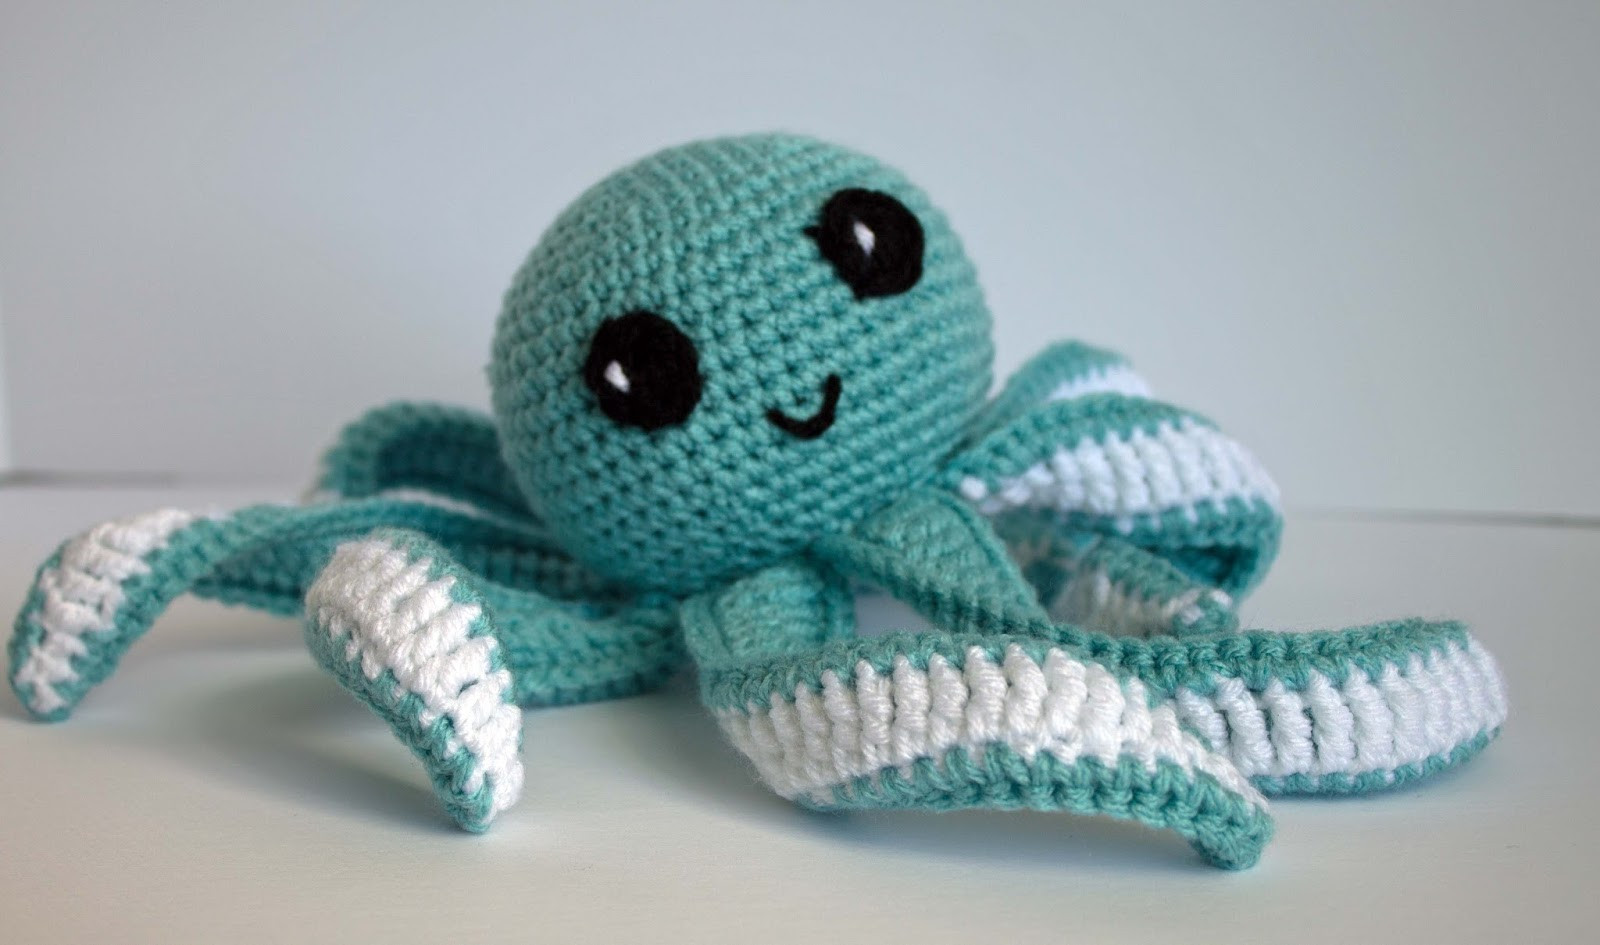 Crochet Octopus Pattern Lovely Amigurumi Octopus Baby toy Free Pattern Part 2 Of Amazing 50 Photos Crochet Octopus Pattern